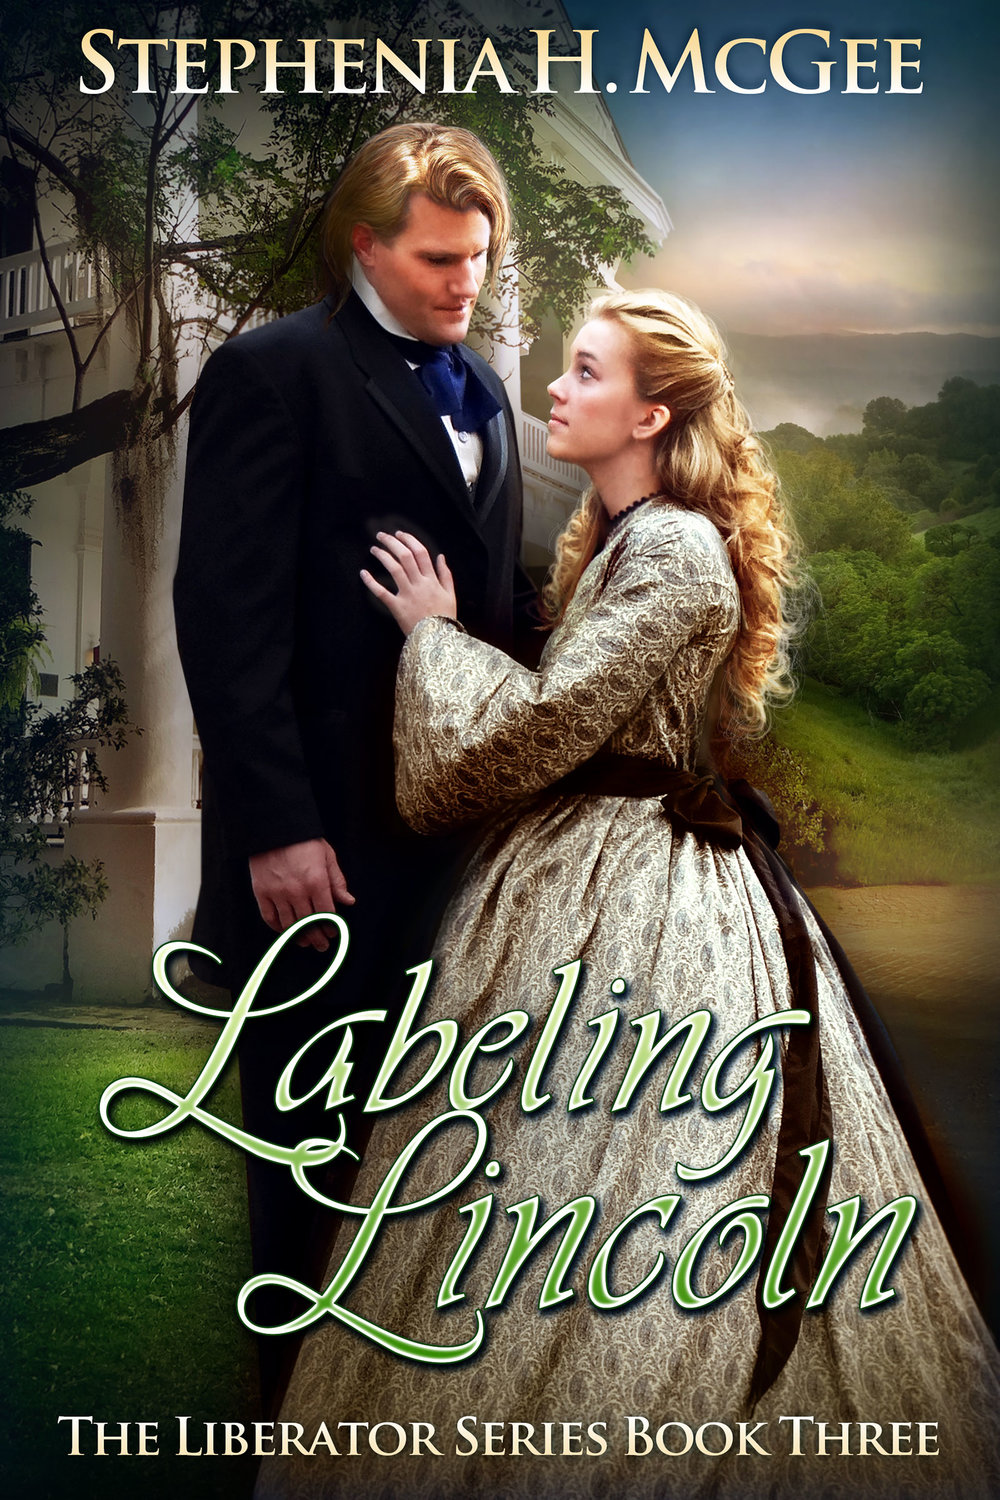 LabelingLincoln_ebook.jpg